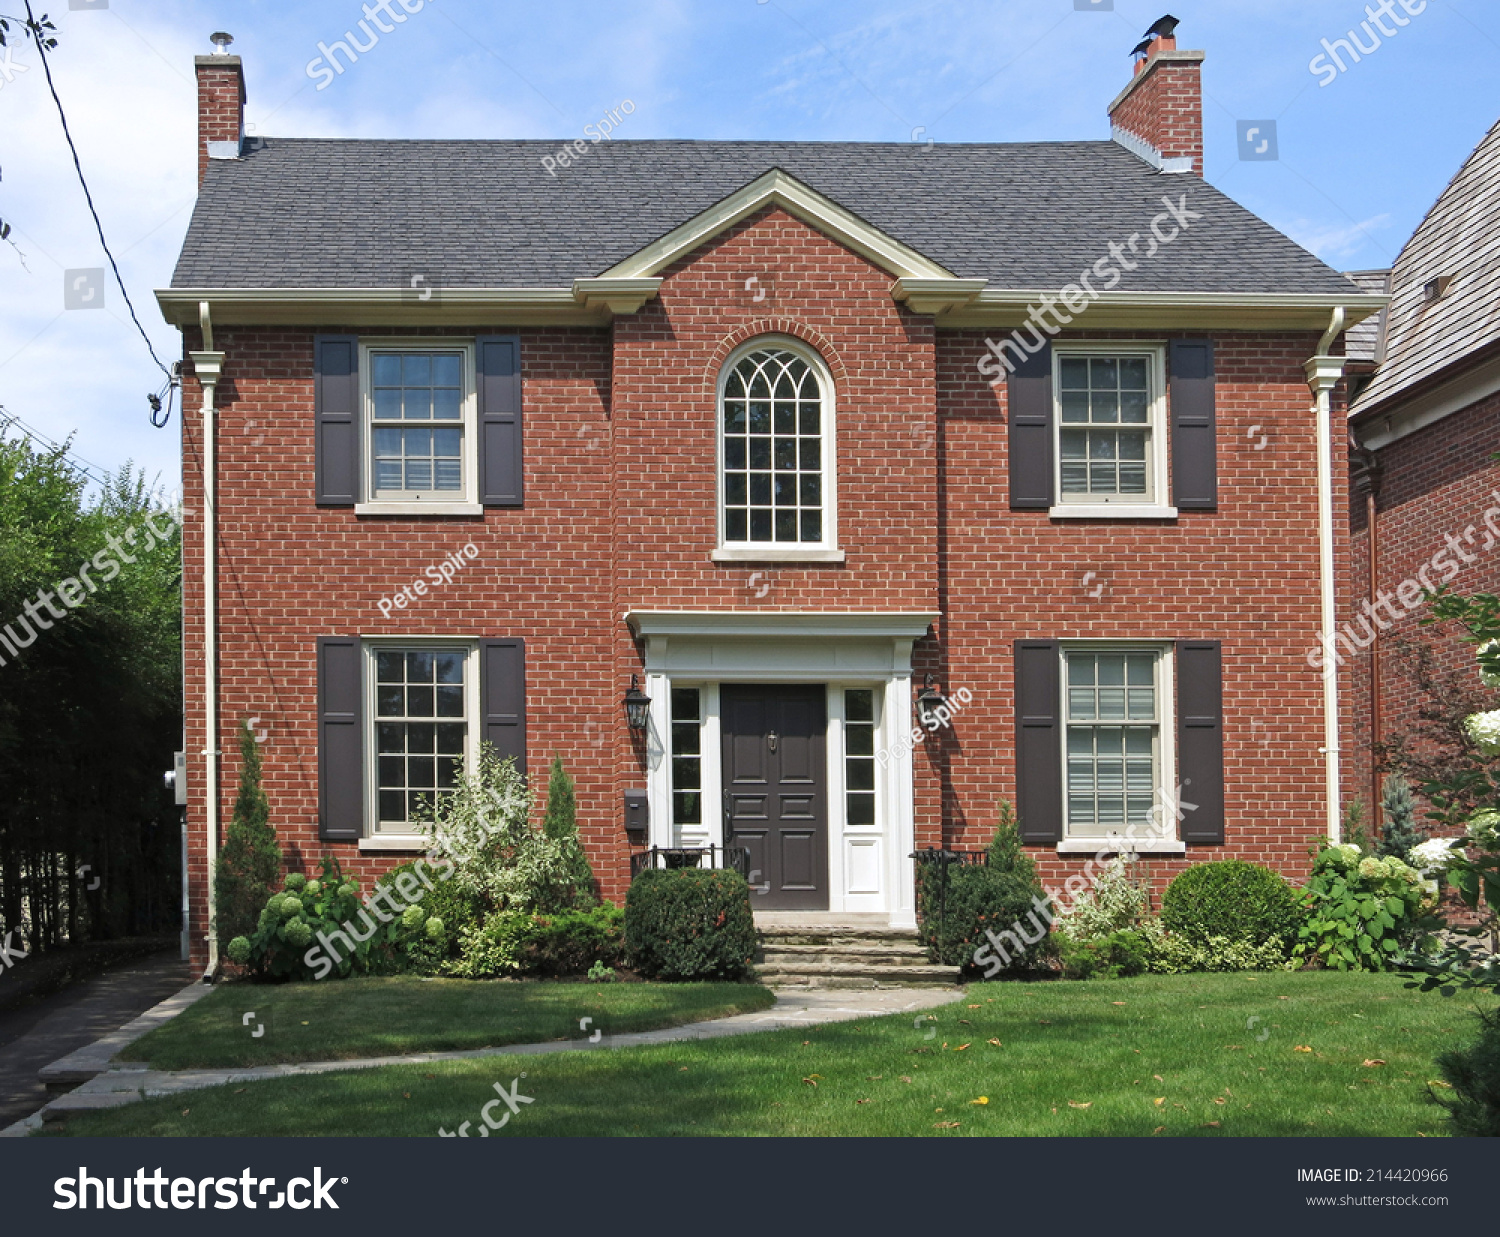 Traditional two story brick house shutters stock photo for Traditional brick homes